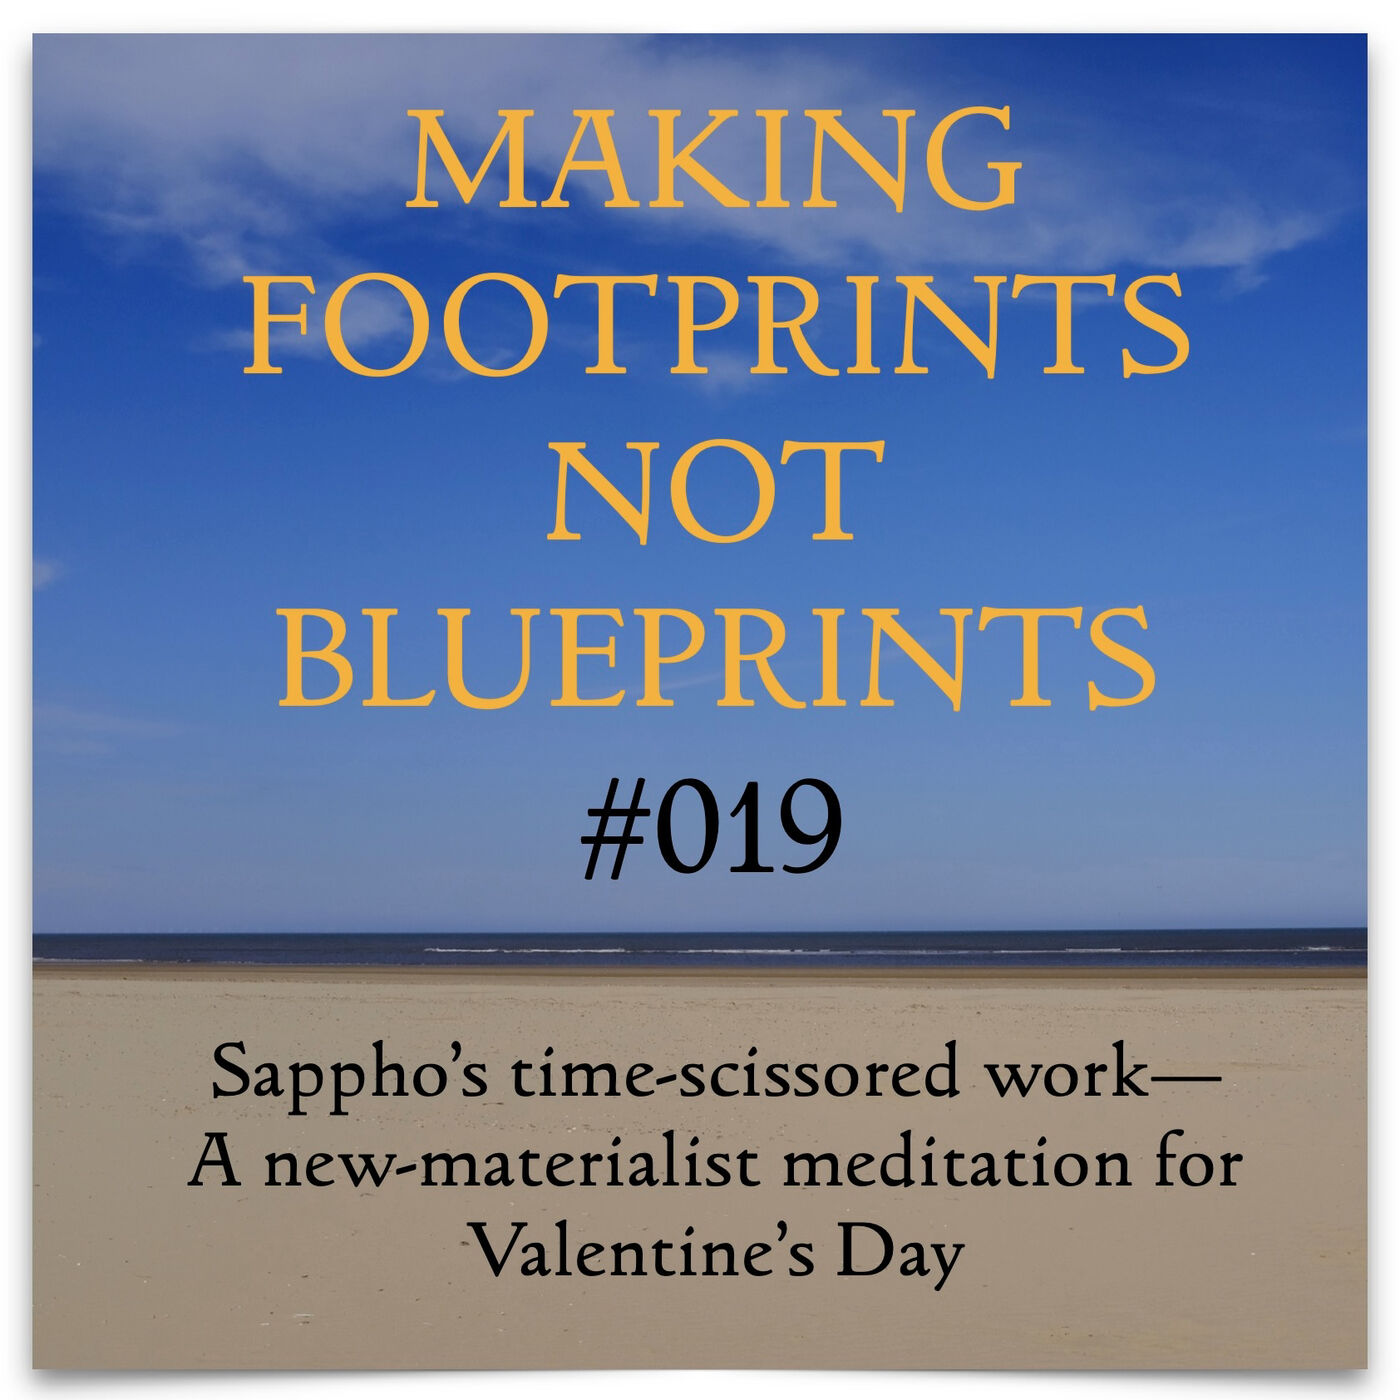 S01 #19 - Sappho's time-scissored work—A new-materialist meditation for Valentine's Day